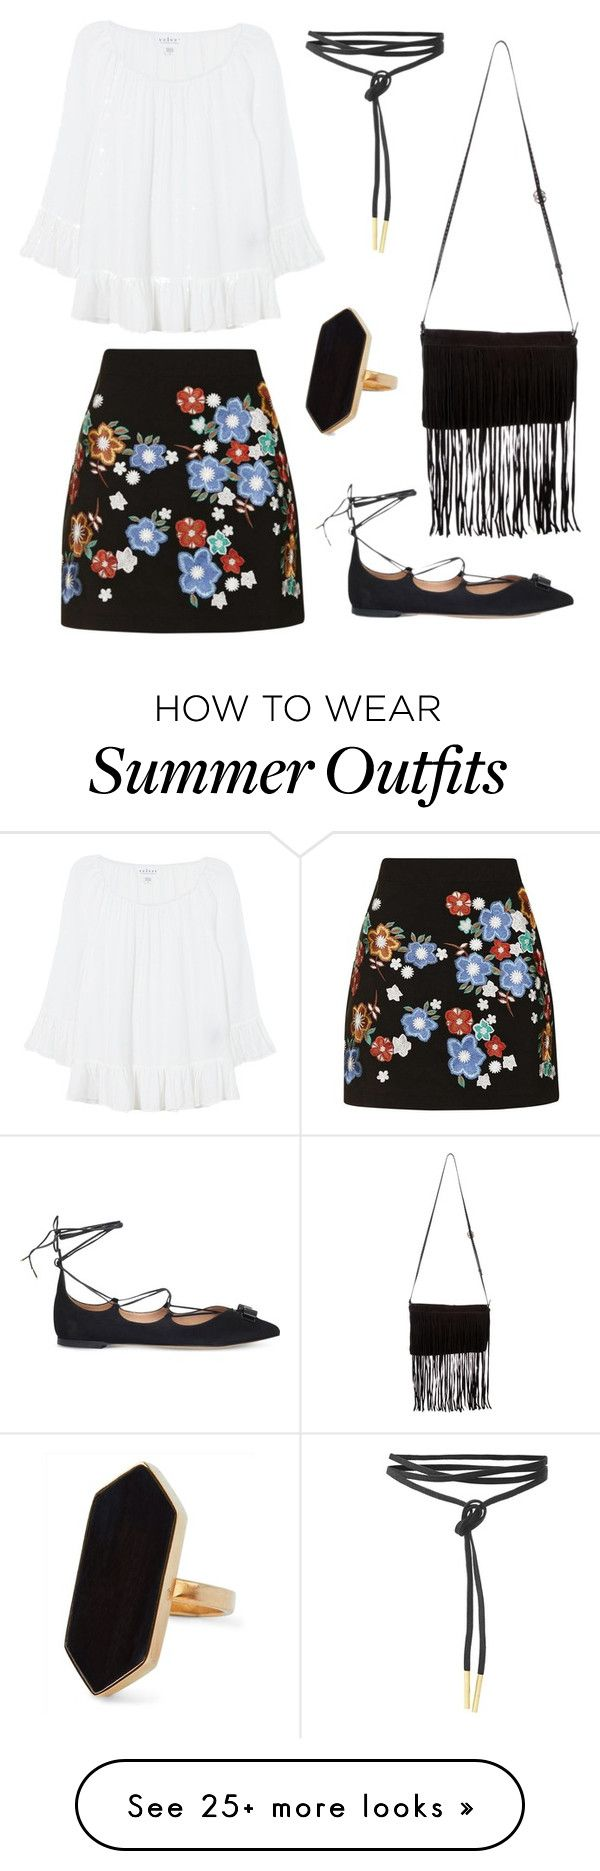 """Summer Date Outfit"" by roses-s on Polyvore featuring Topshop, Velvet, Salvatore Ferragamo, Michael Kors and Jaeger"